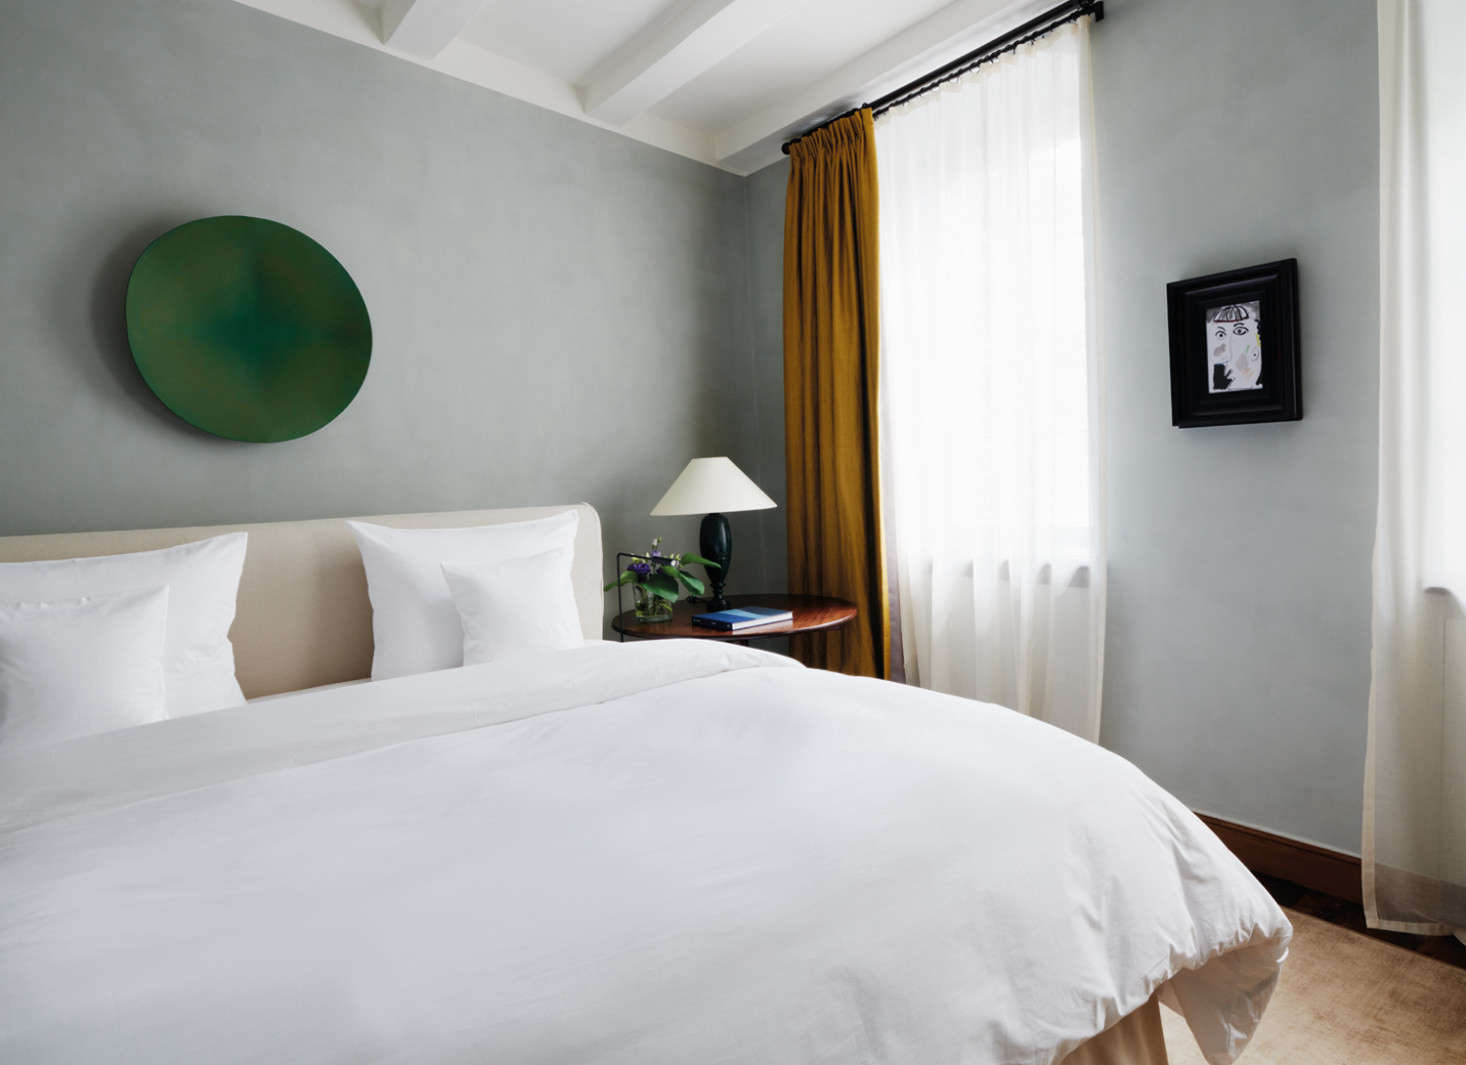 A guest suite rendered in calming colors.